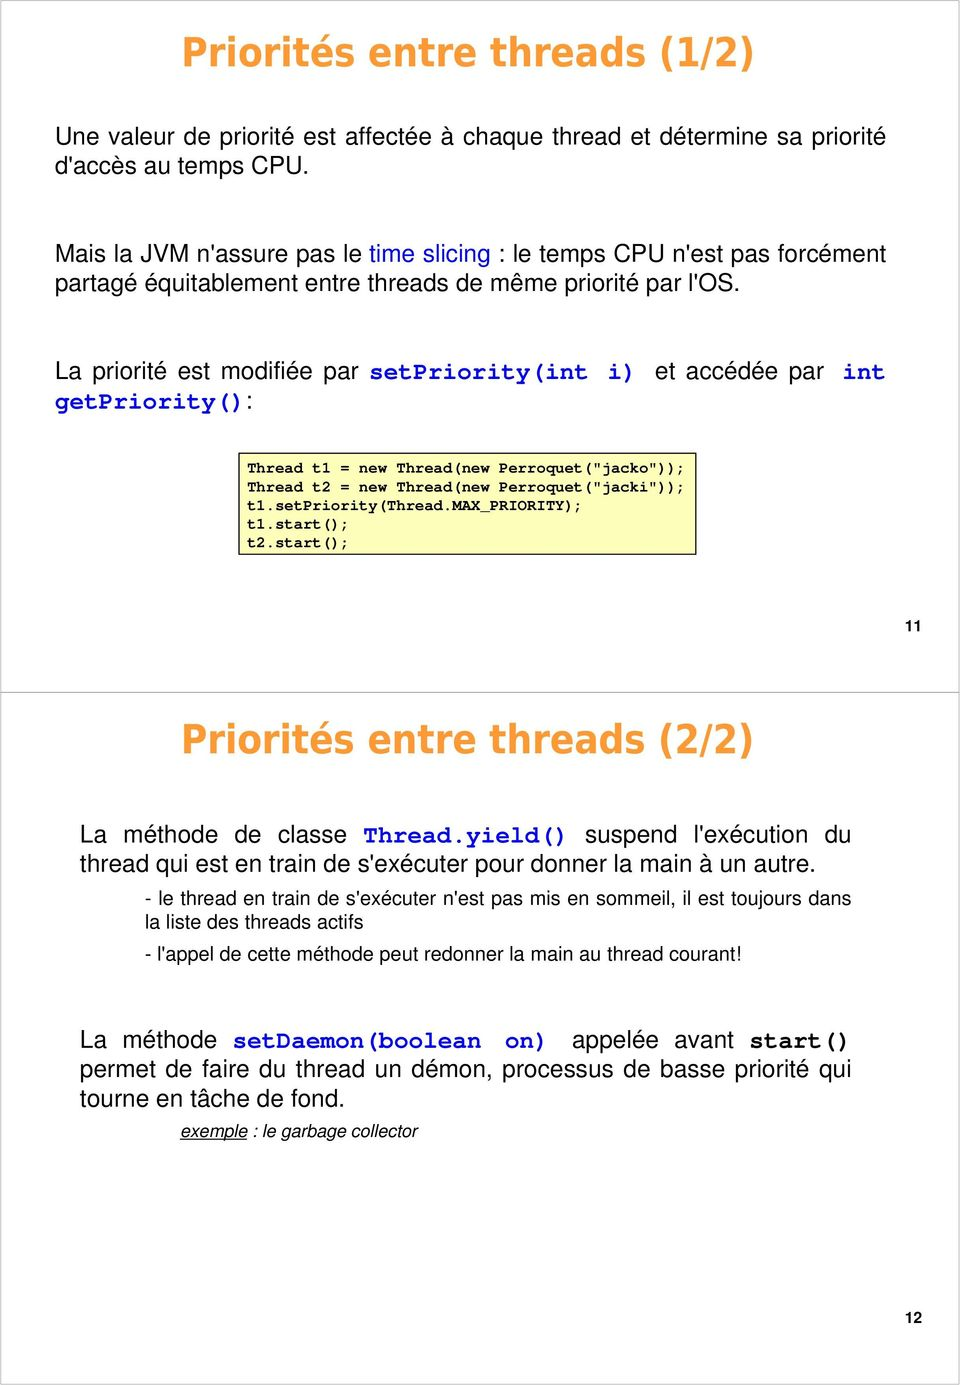 "La priorité est modifiée par setpriority(int i) et accédée par int getpriority(): Thread t1 = new Thread(new Perroquet(""jacko"")); Thread t2 = new Thread(new Perroquet(""jacki"")); t1.setpriority(thread."